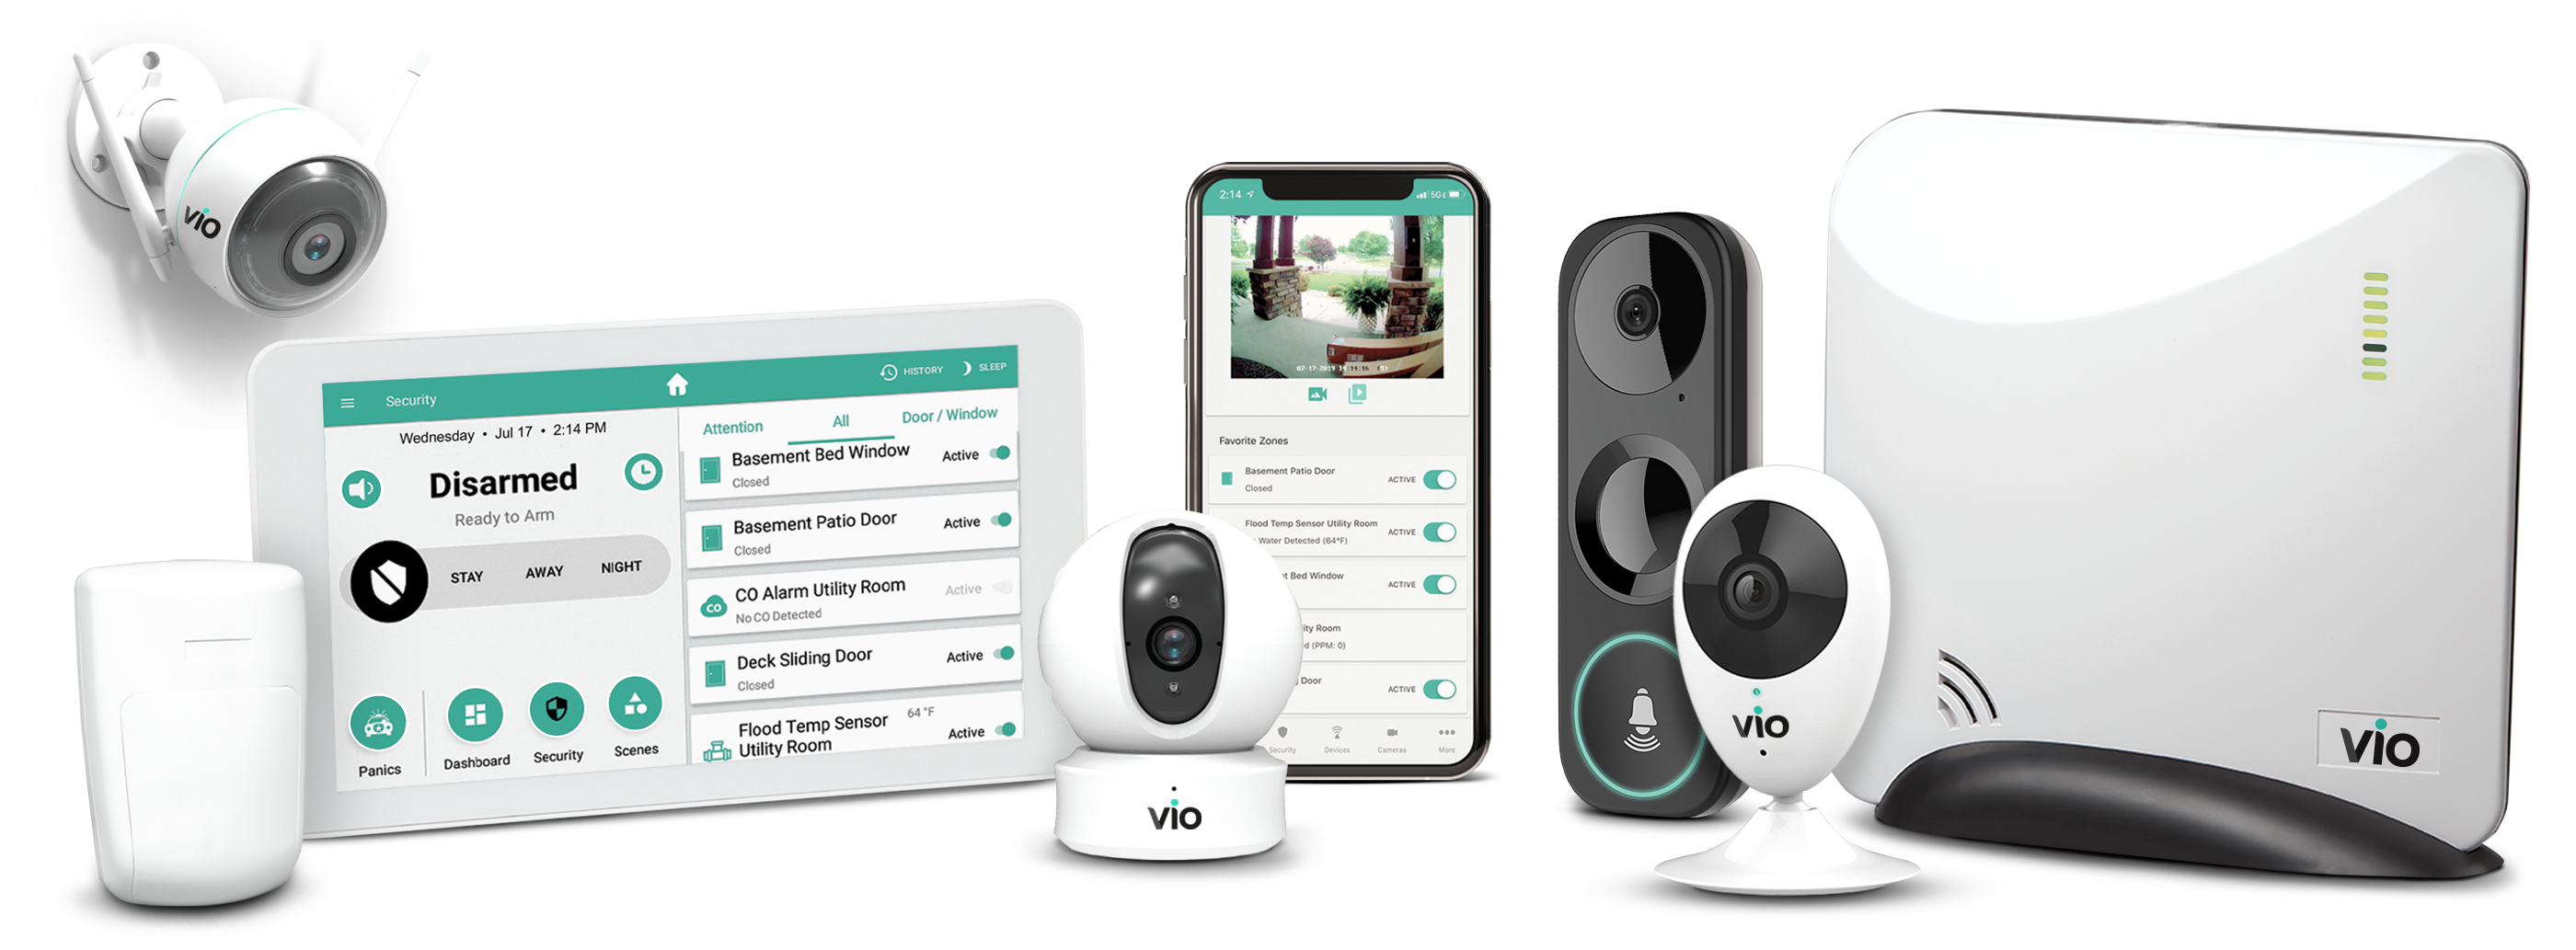 Vio Security equipment